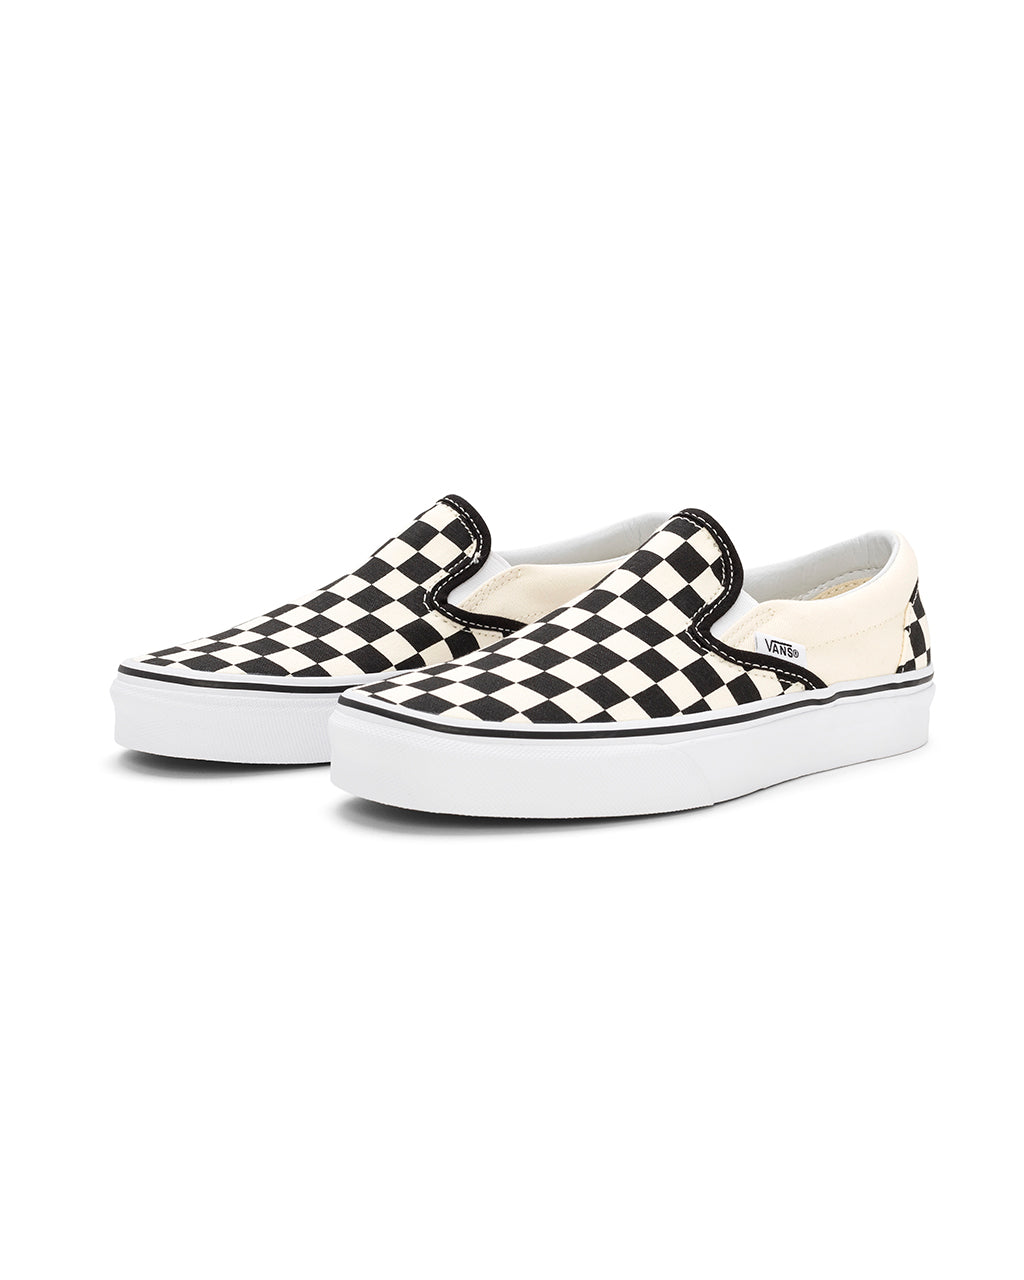 Classic Slip-On - Checkerboard by Vans - shoes - ban.do